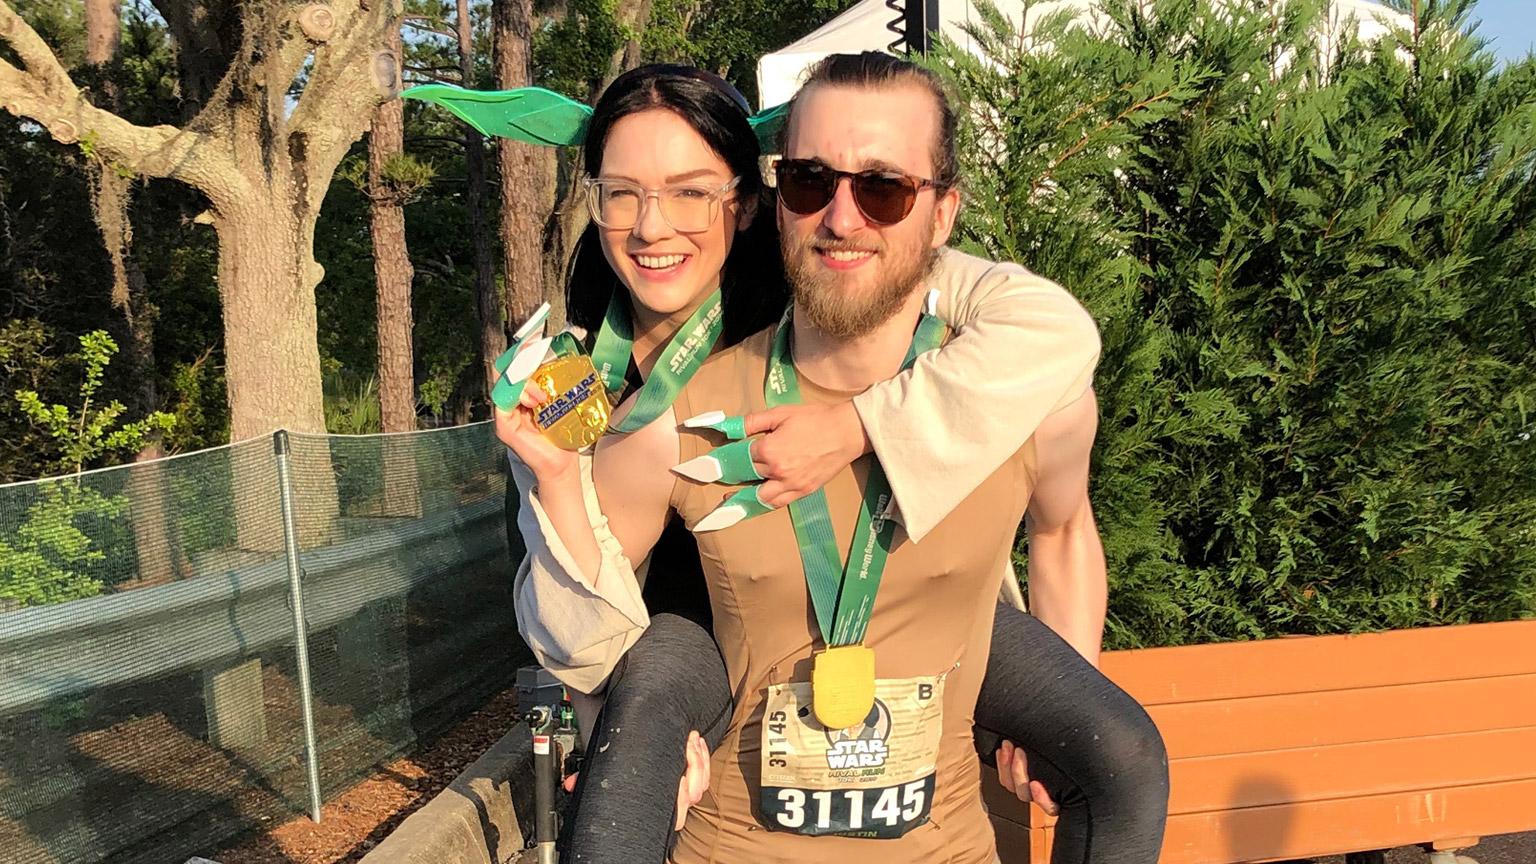 Fox and her boyfriend dressed up as Yoda and Luke after finishing runDisney race